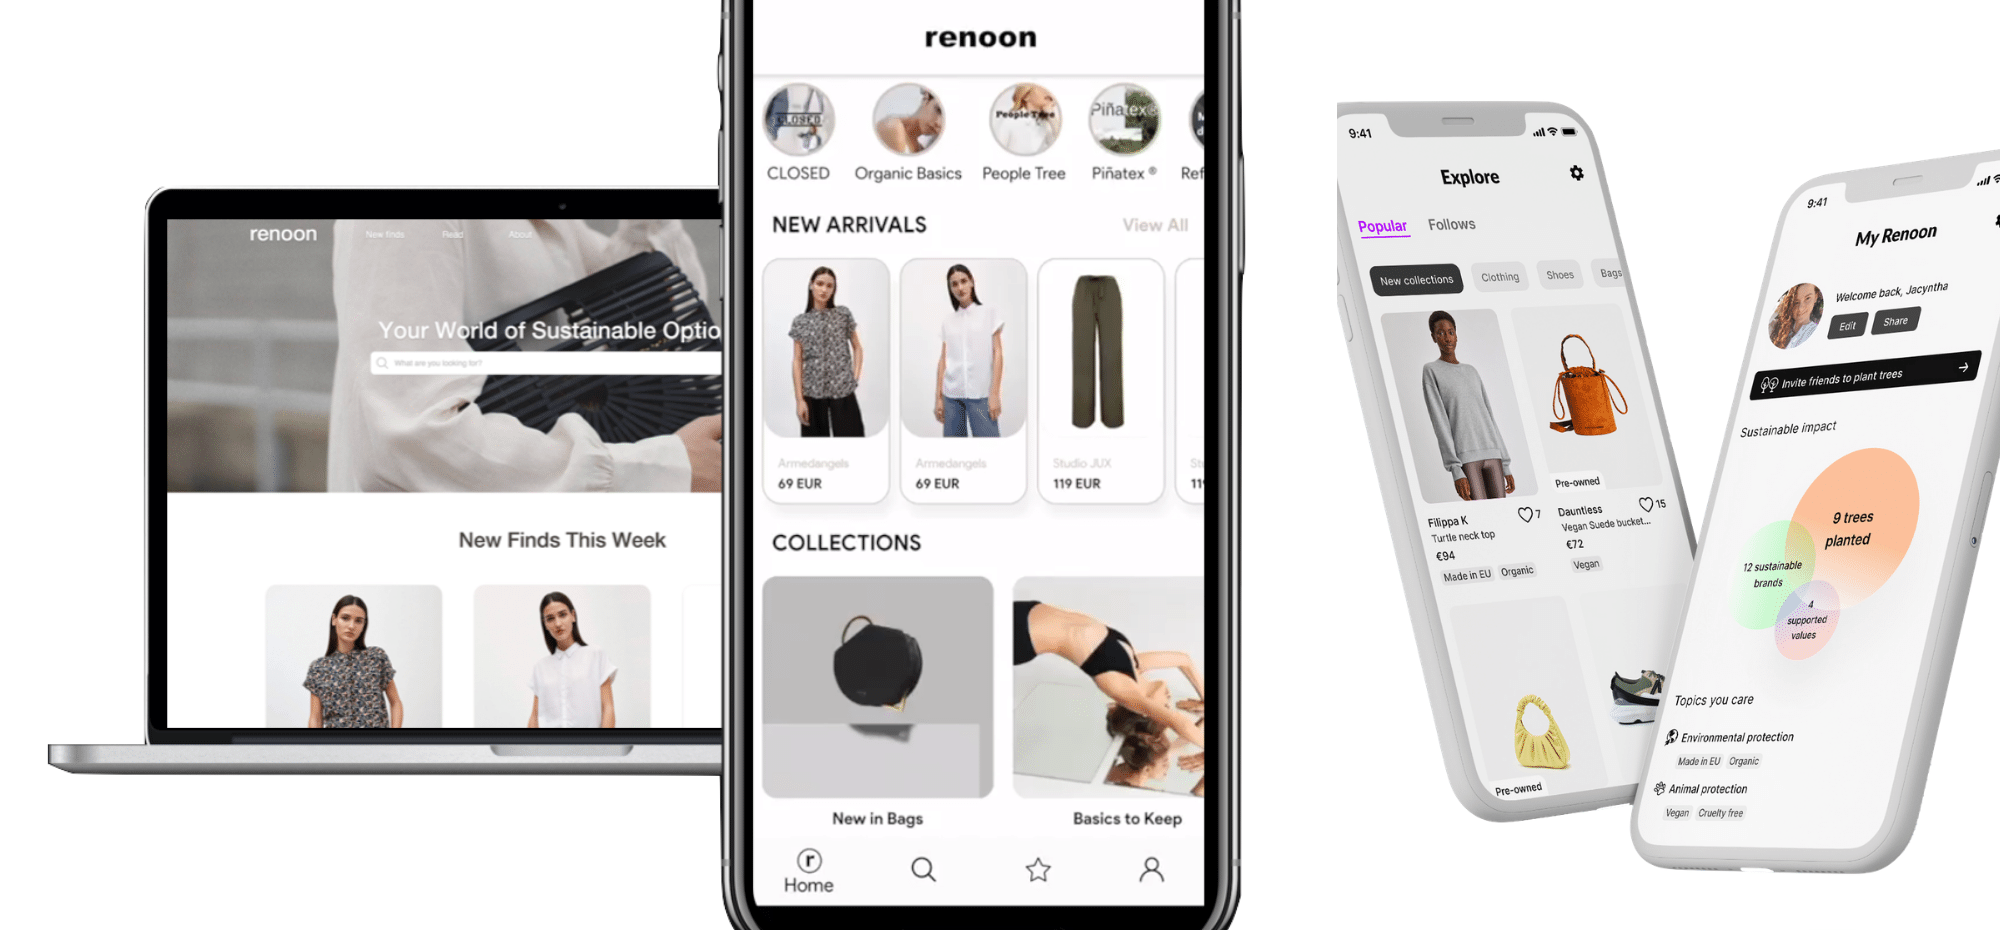 A search engine for sustainable fashion